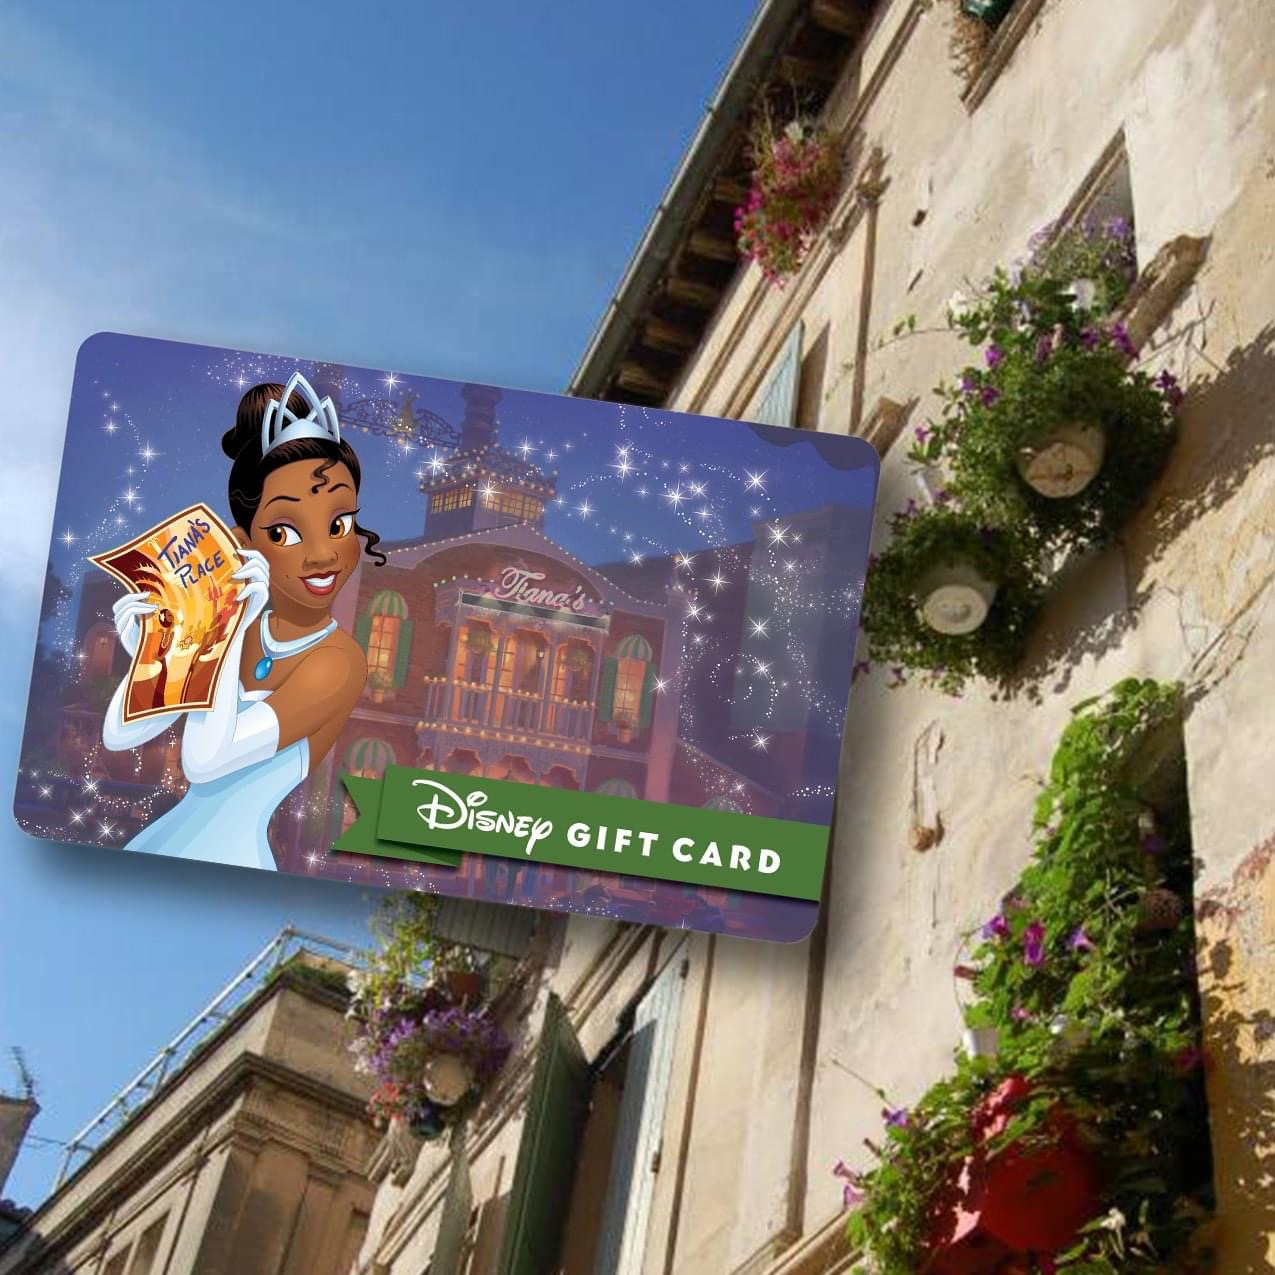 New Disney Gift Card Designs for Your Holiday Gift Giving from shopDisney! 15